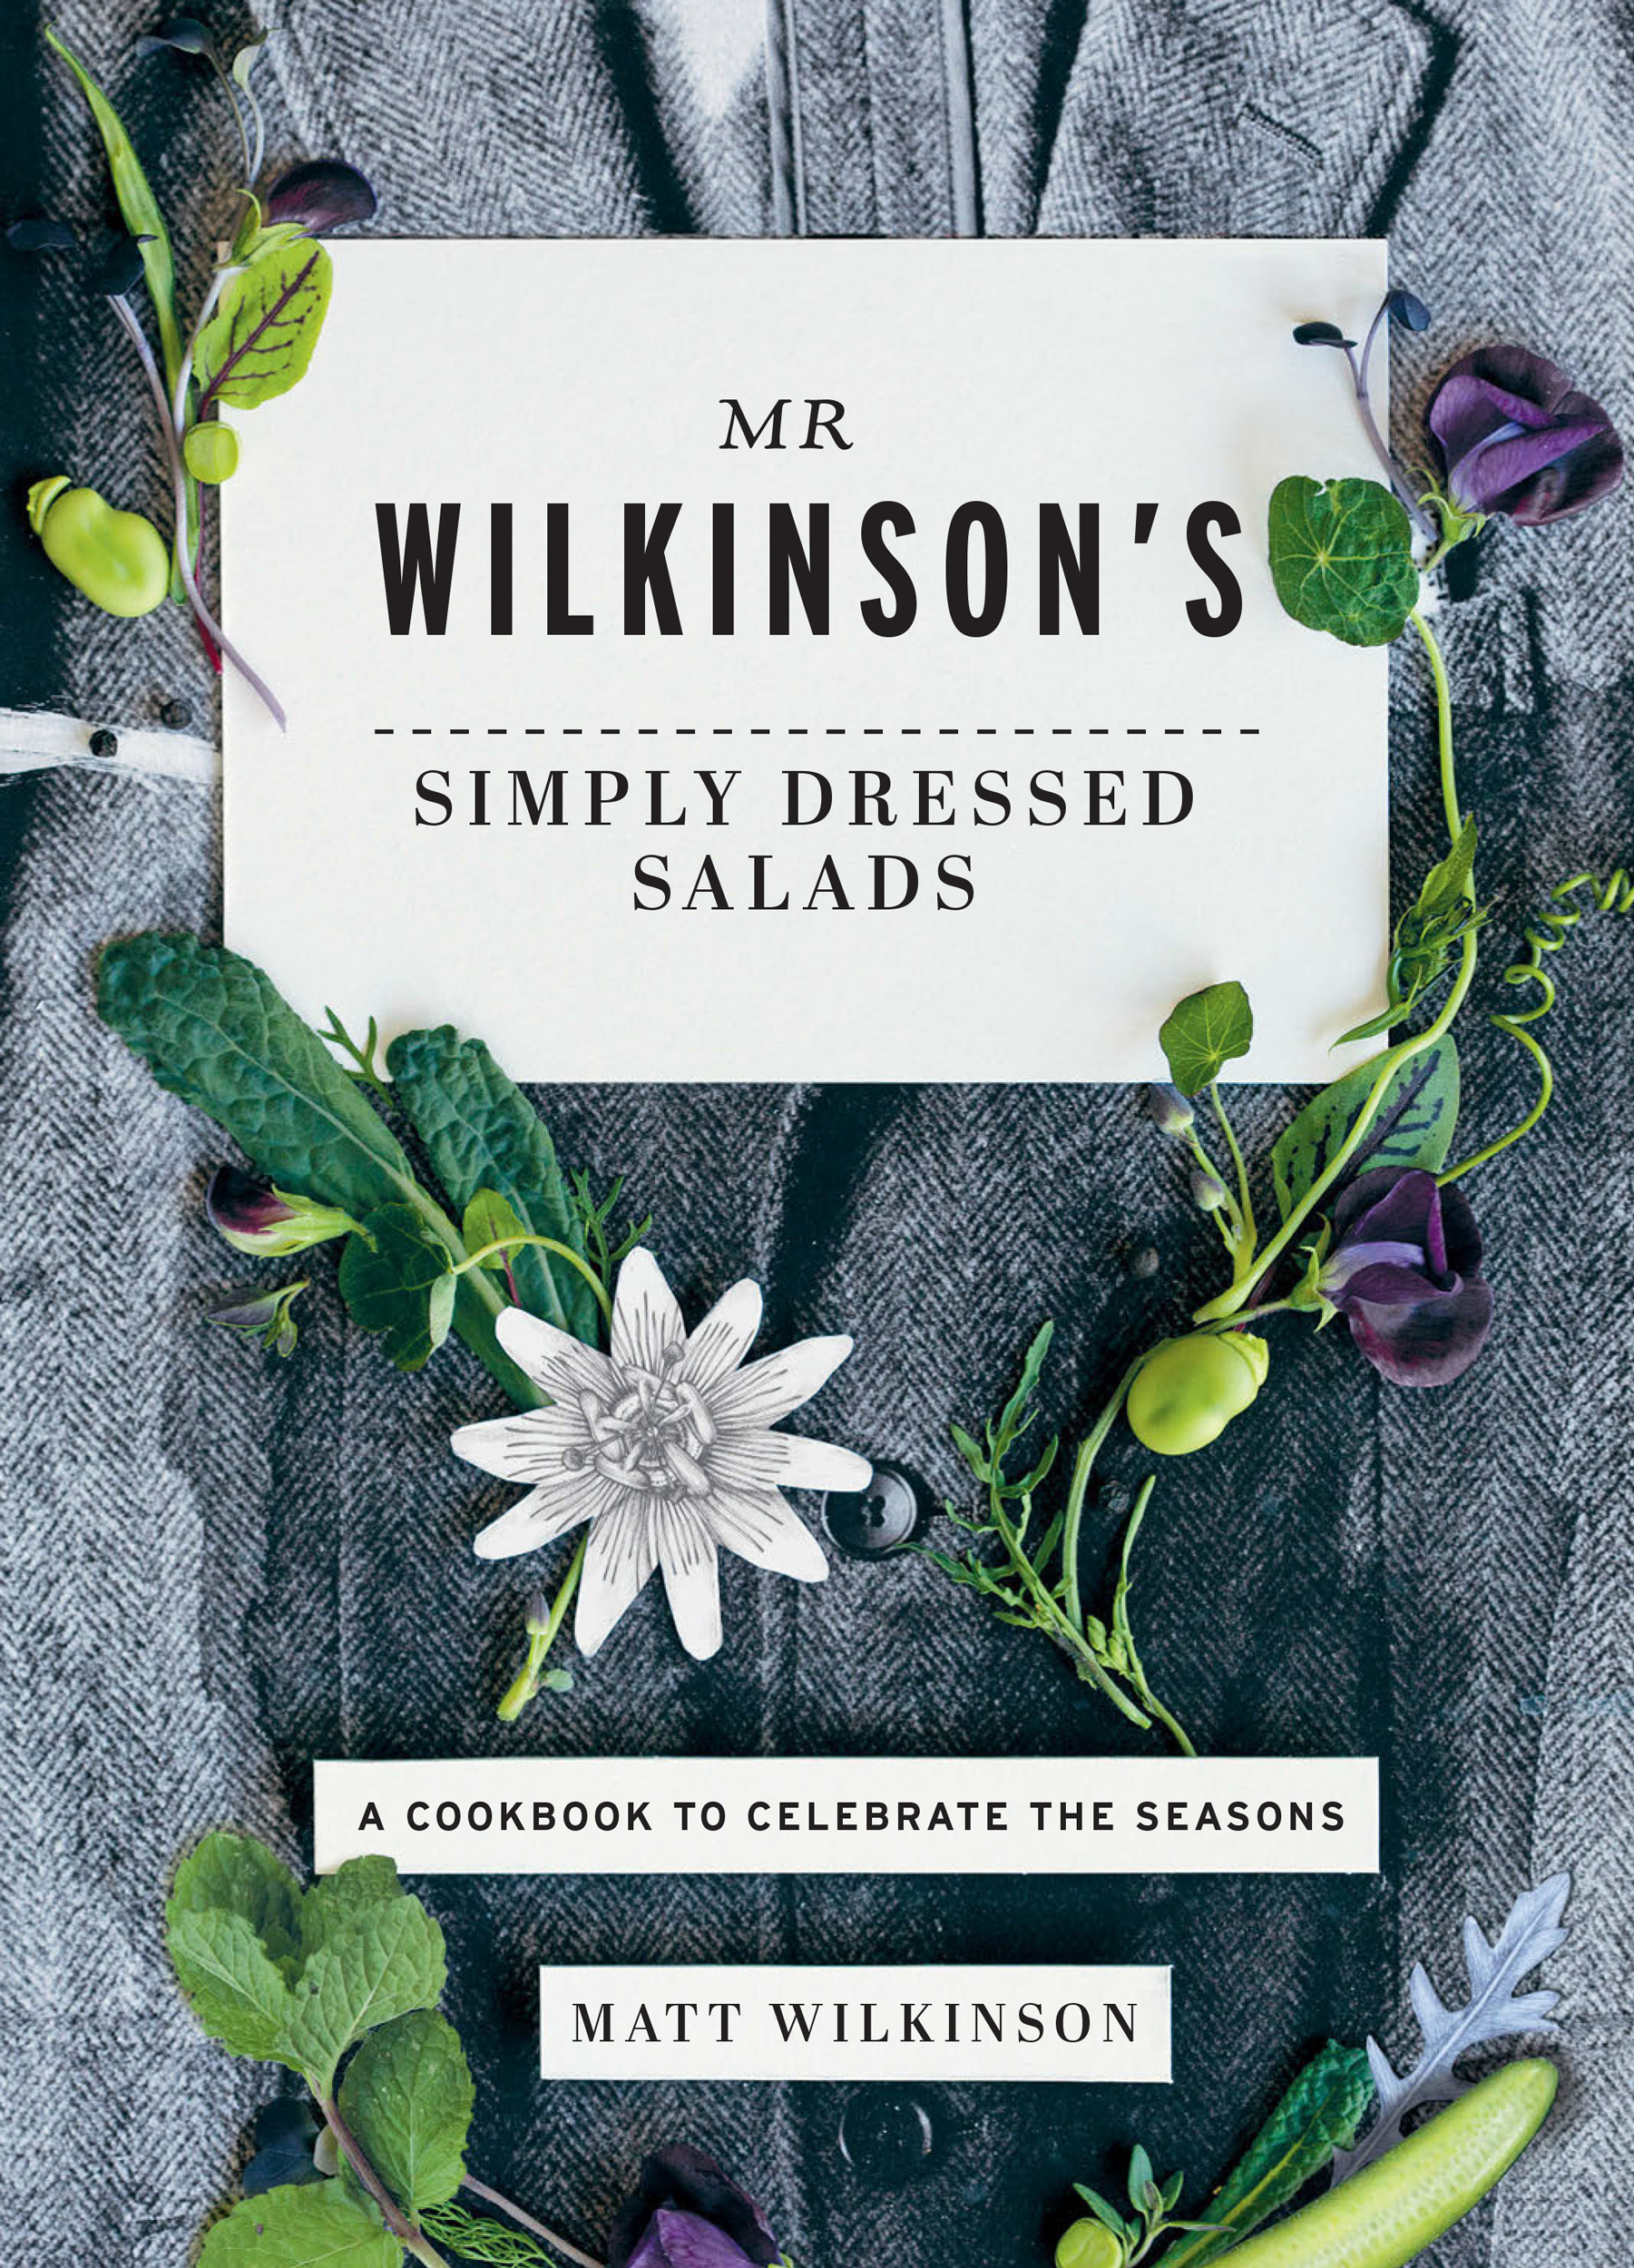 Mr Wilkinson's Simply Dressed Salads